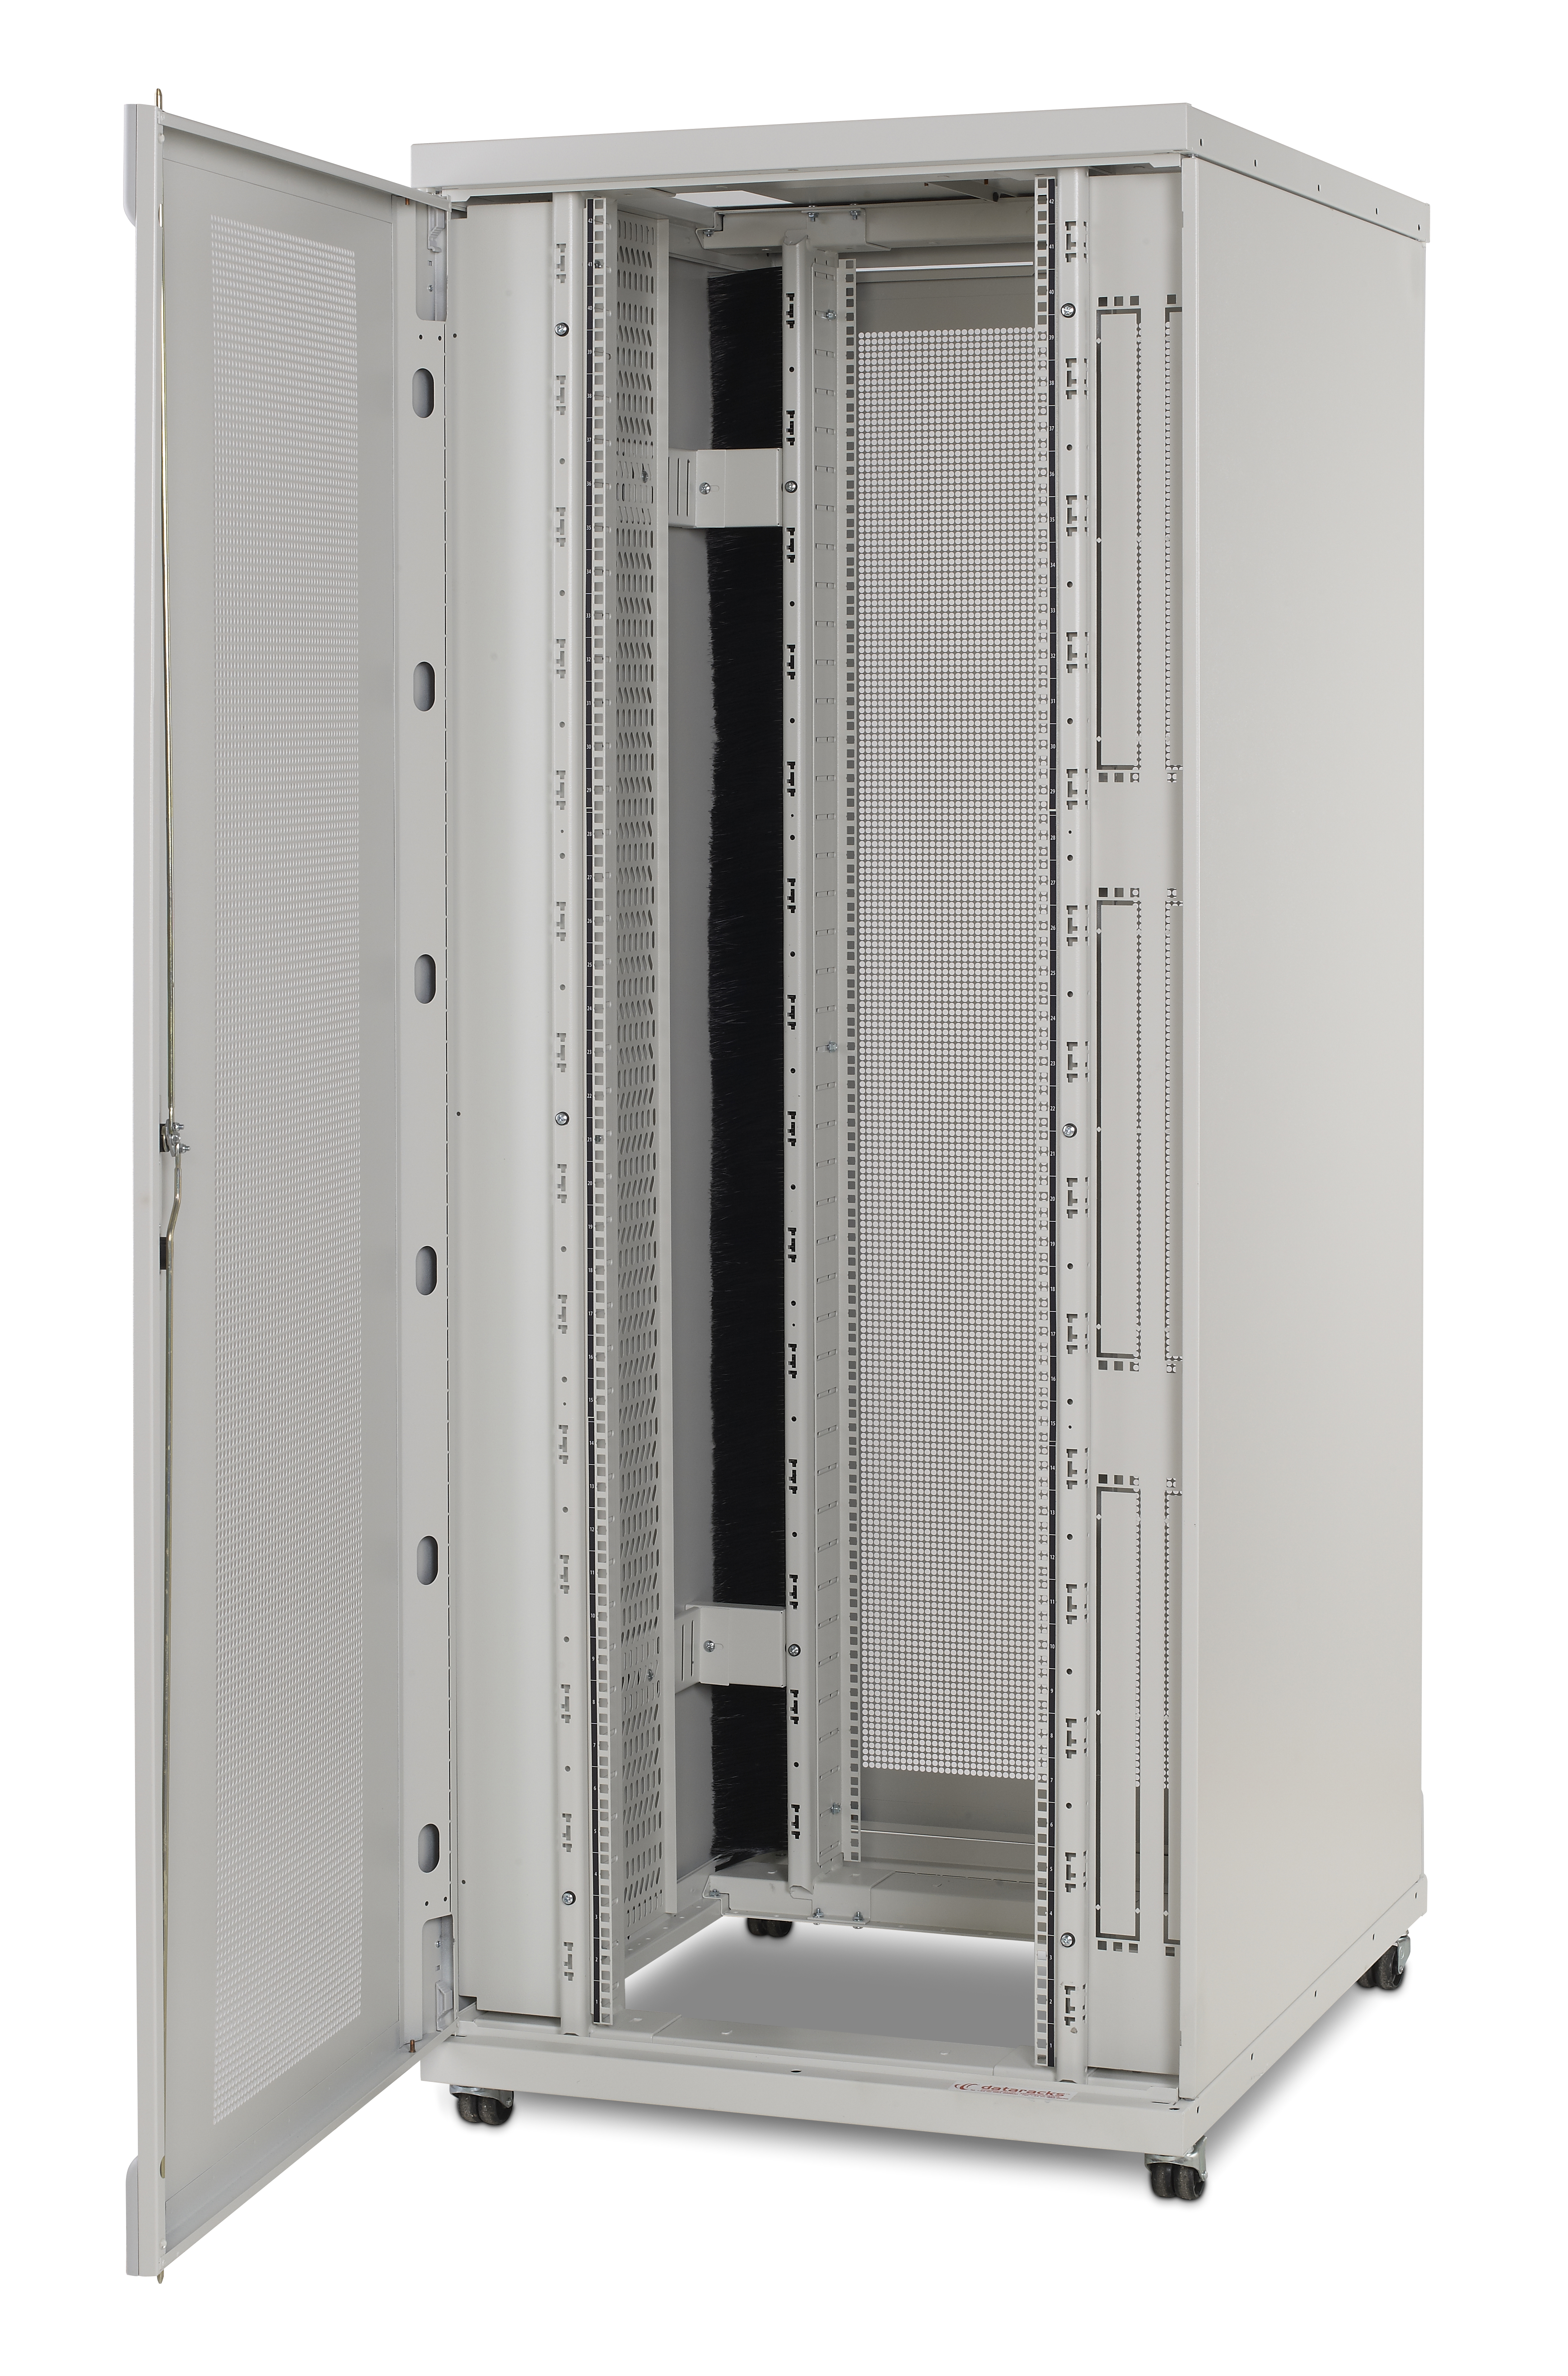 variety equipment server install com rack adjustable easy rails that your you it mounting in can features startech easily to offers cabinet dp of the networking amazon make change with this a enclosure